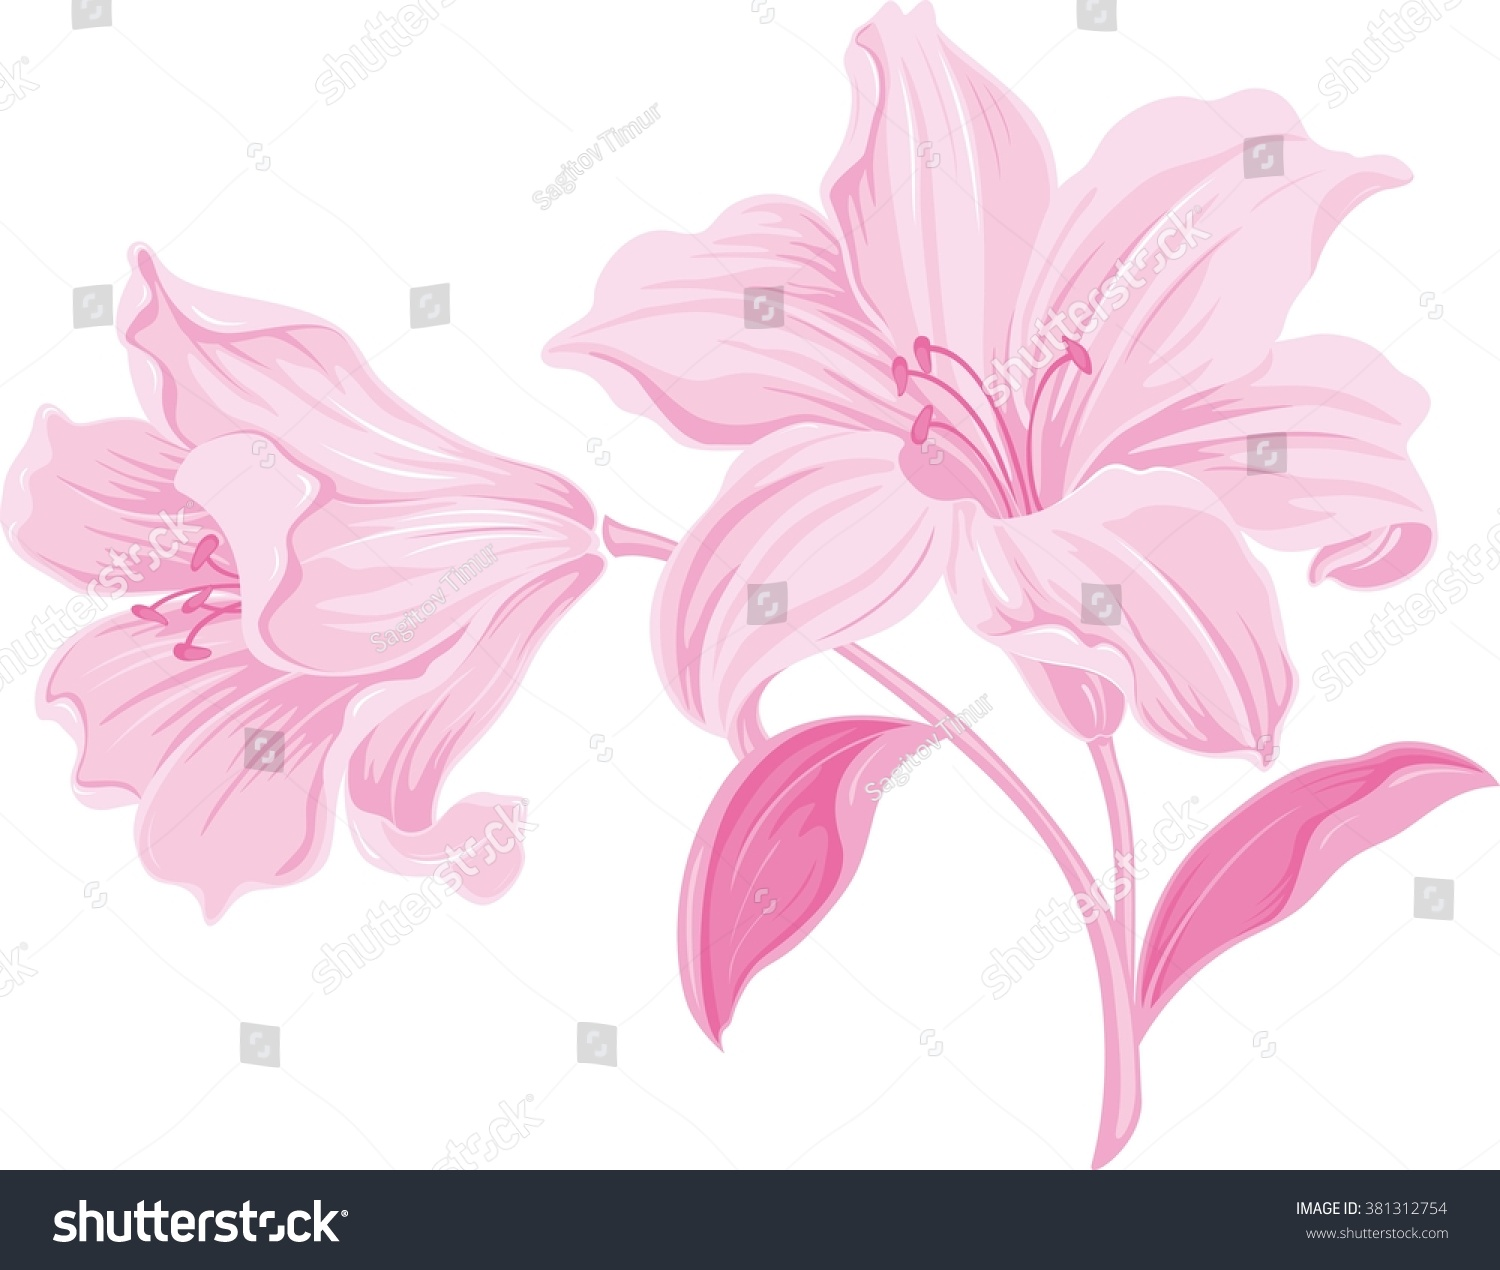 Lily flowers blooming lily card floral stock vector royalty free lily flowers blooming lily card or floral background with blooming lilies flowers silhouette izmirmasajfo